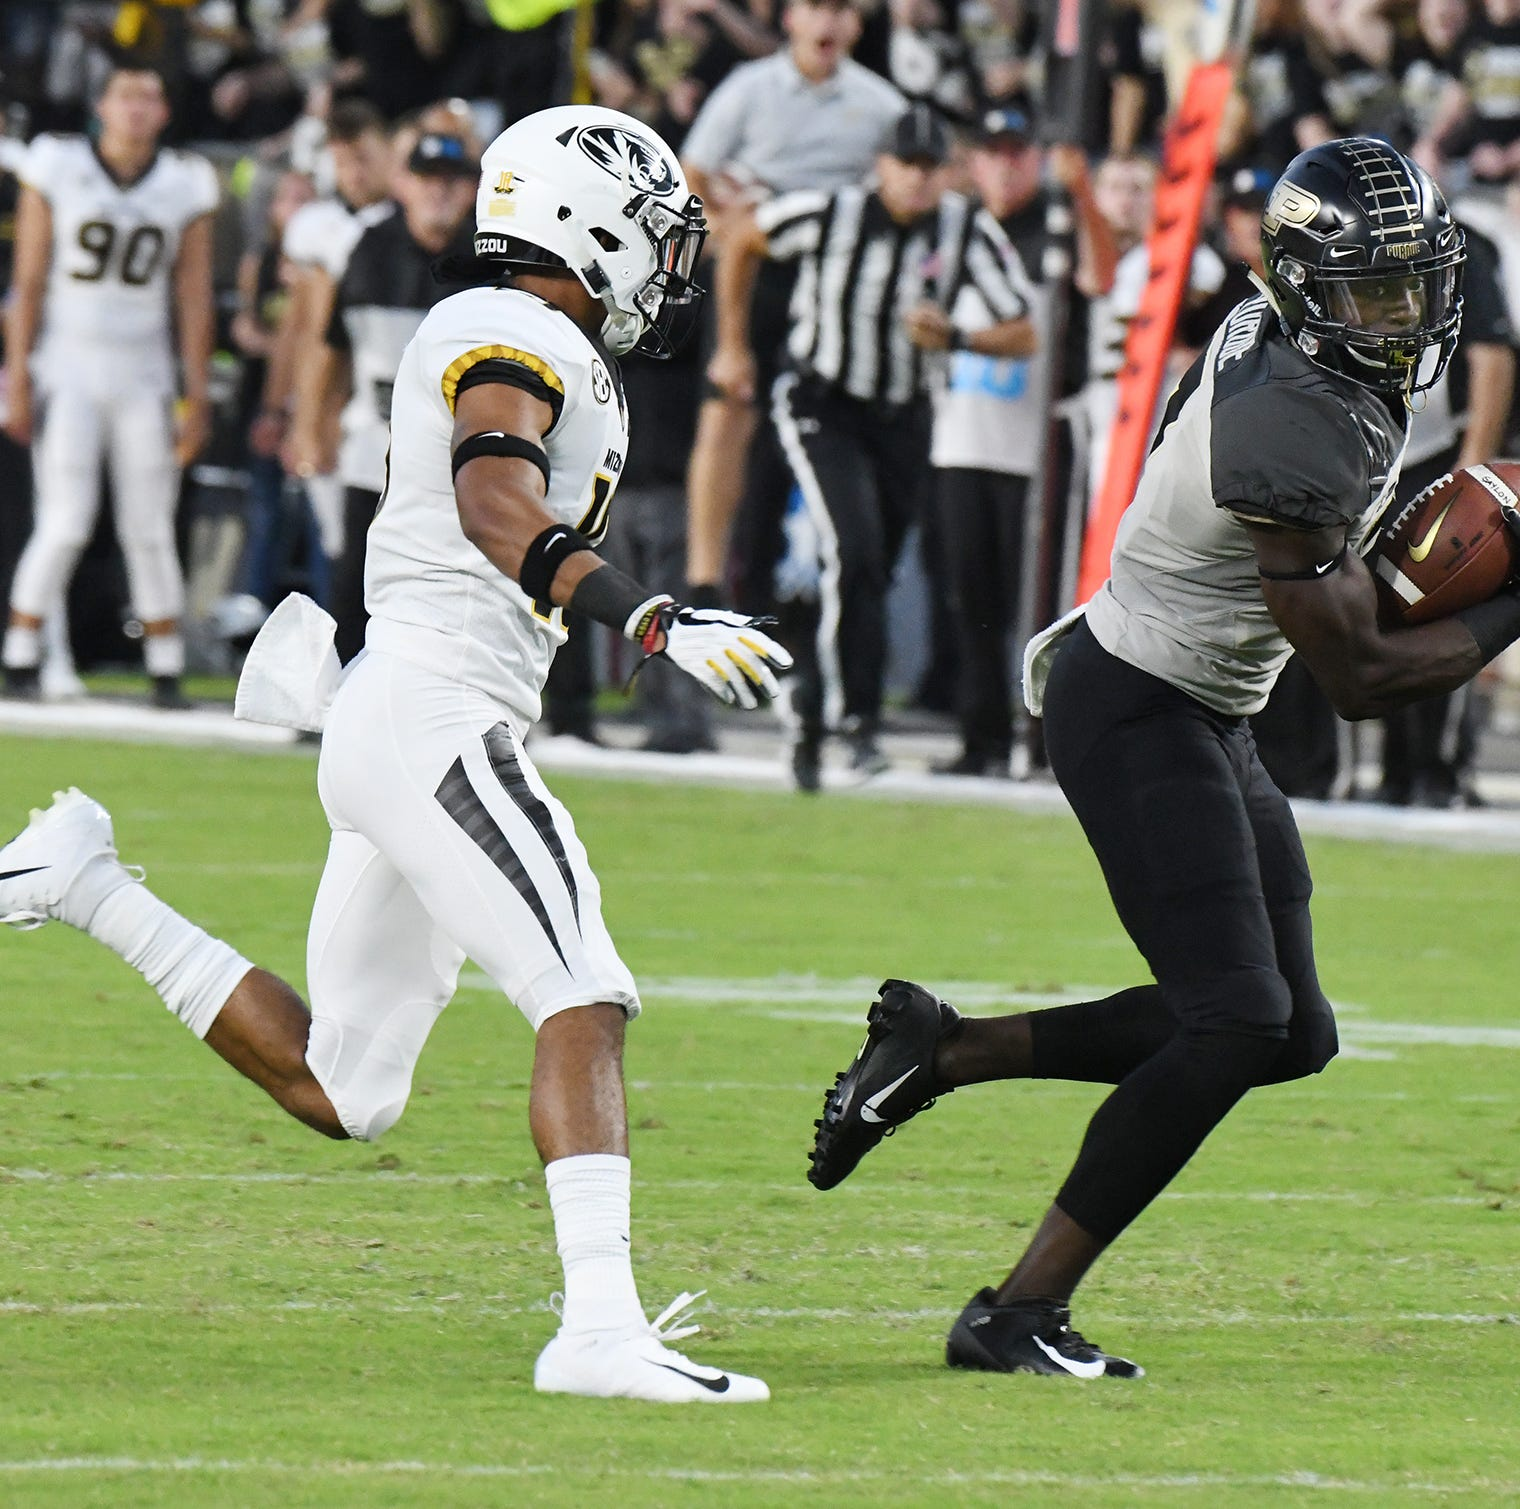 Tracking Purdue offense | Finding balance